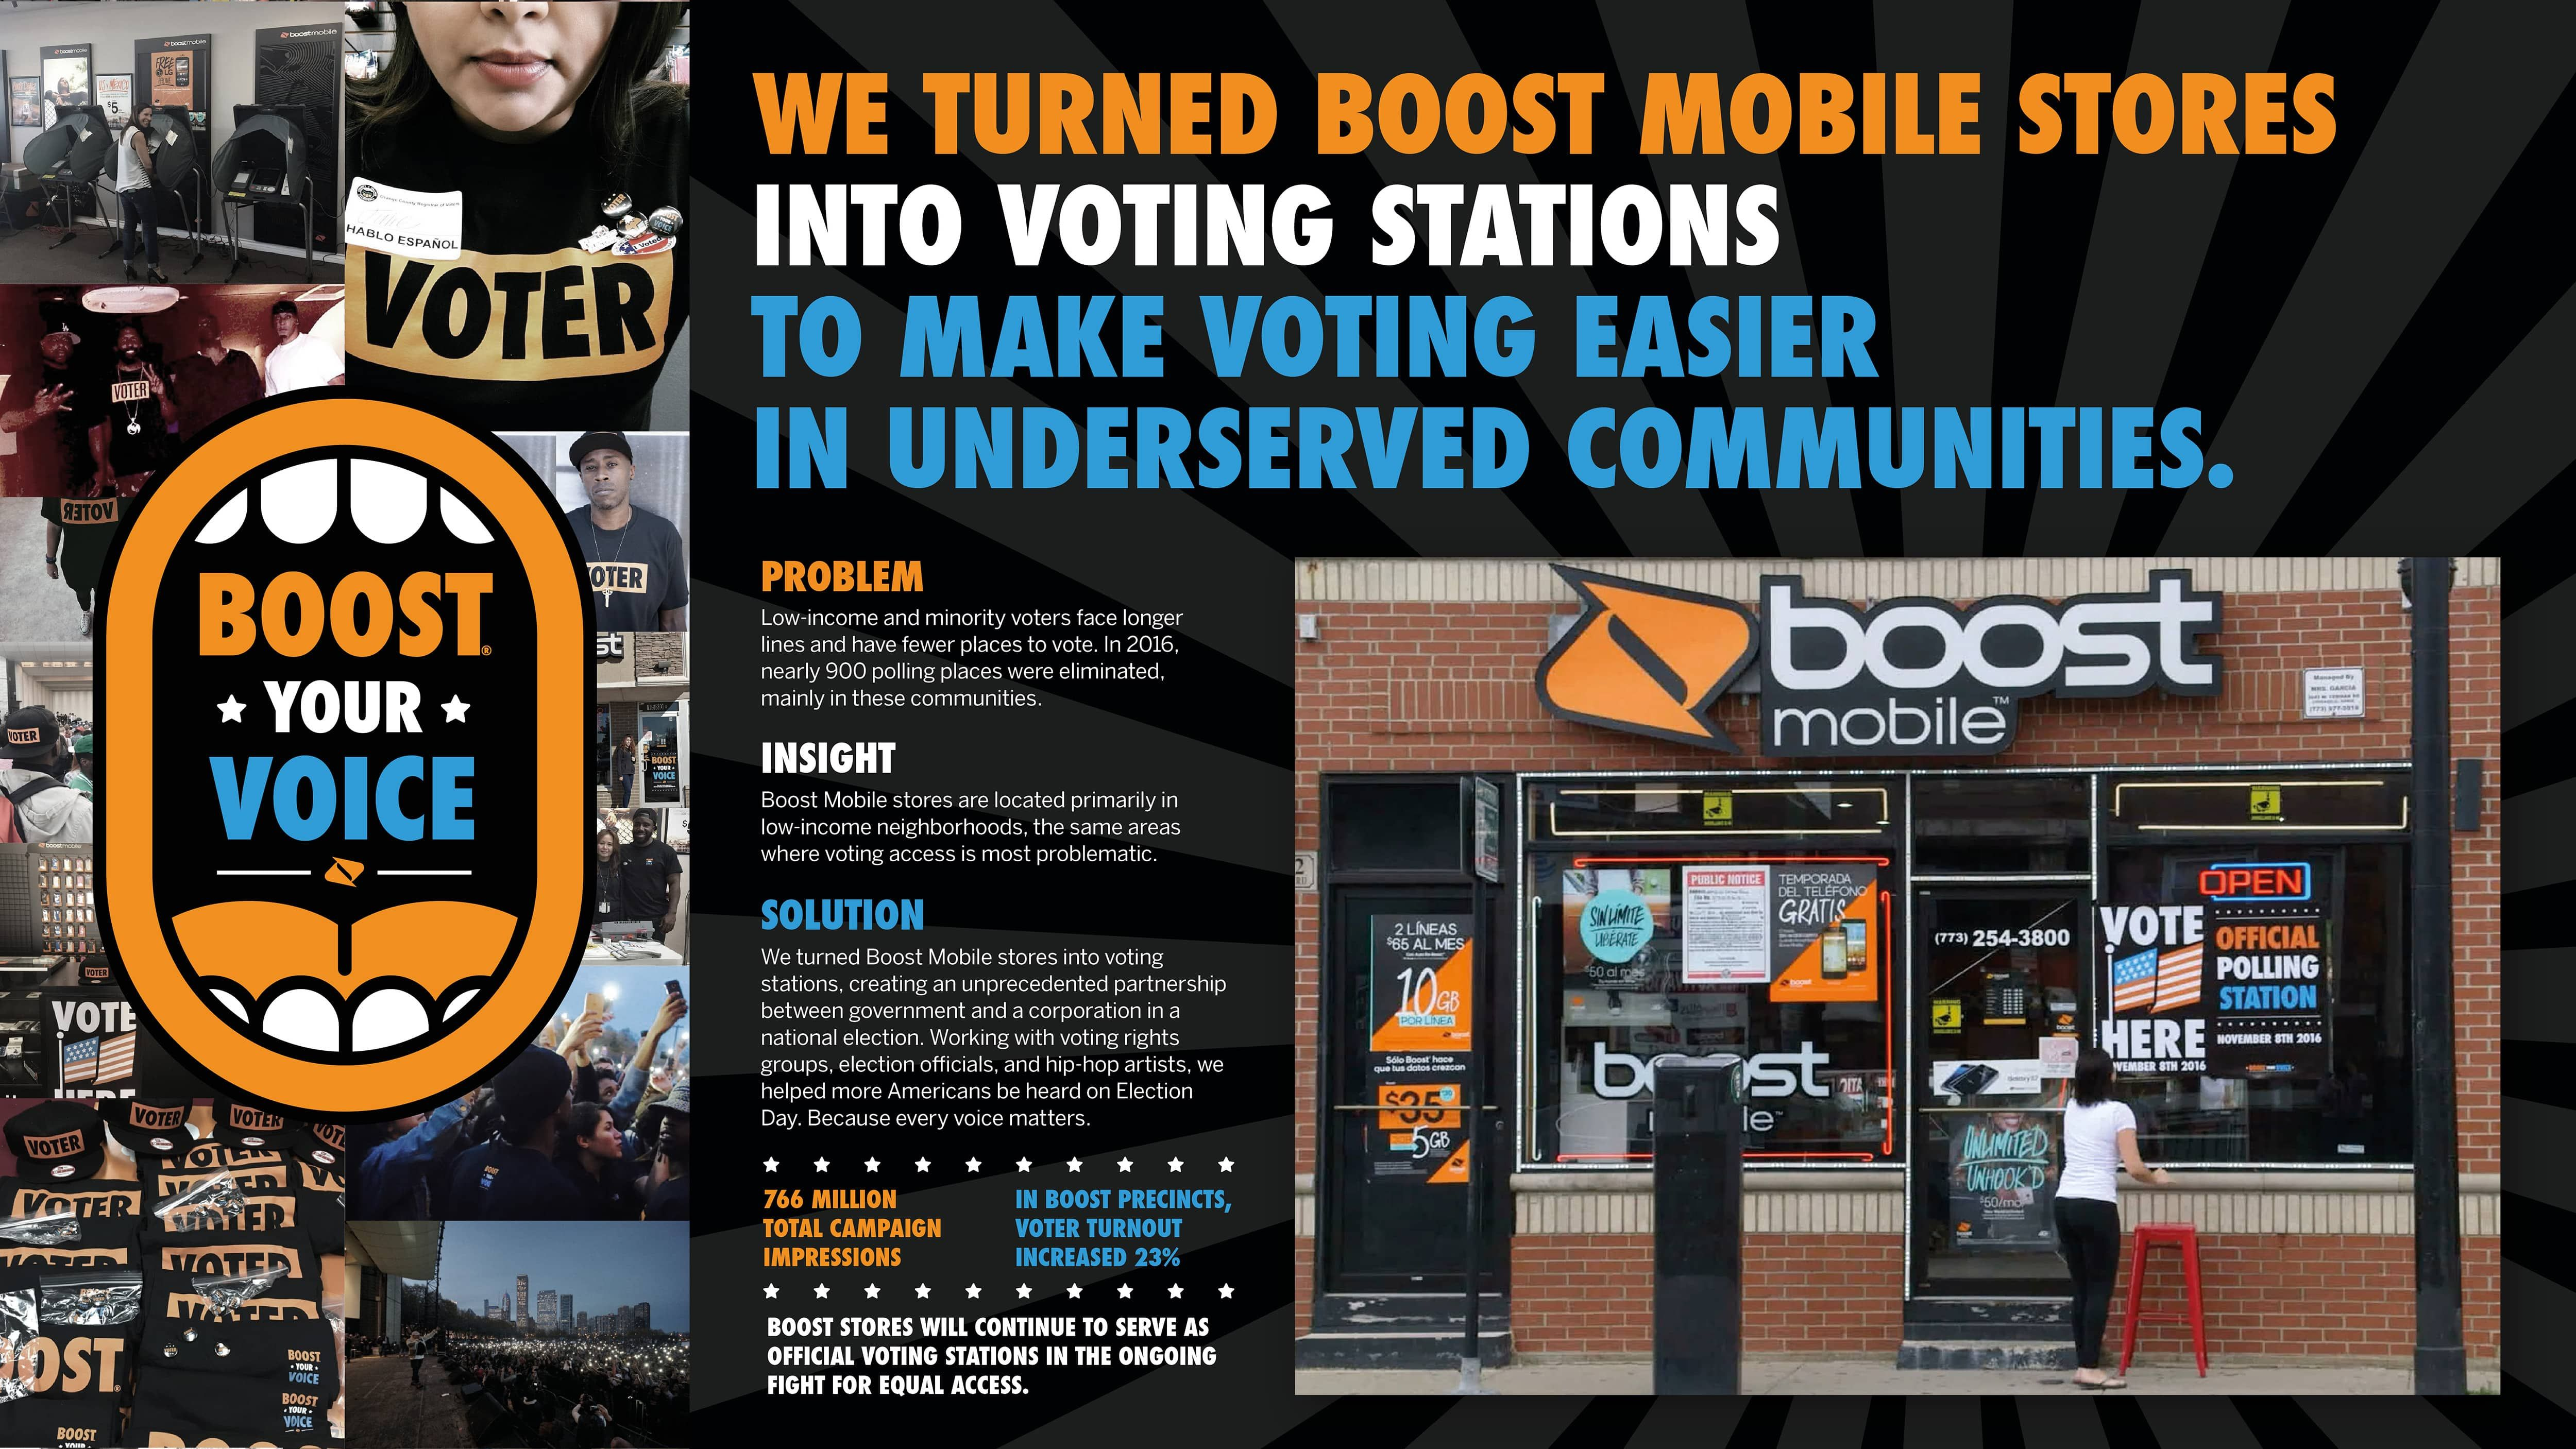 Boost mobile boost your voice boost mobile the voice